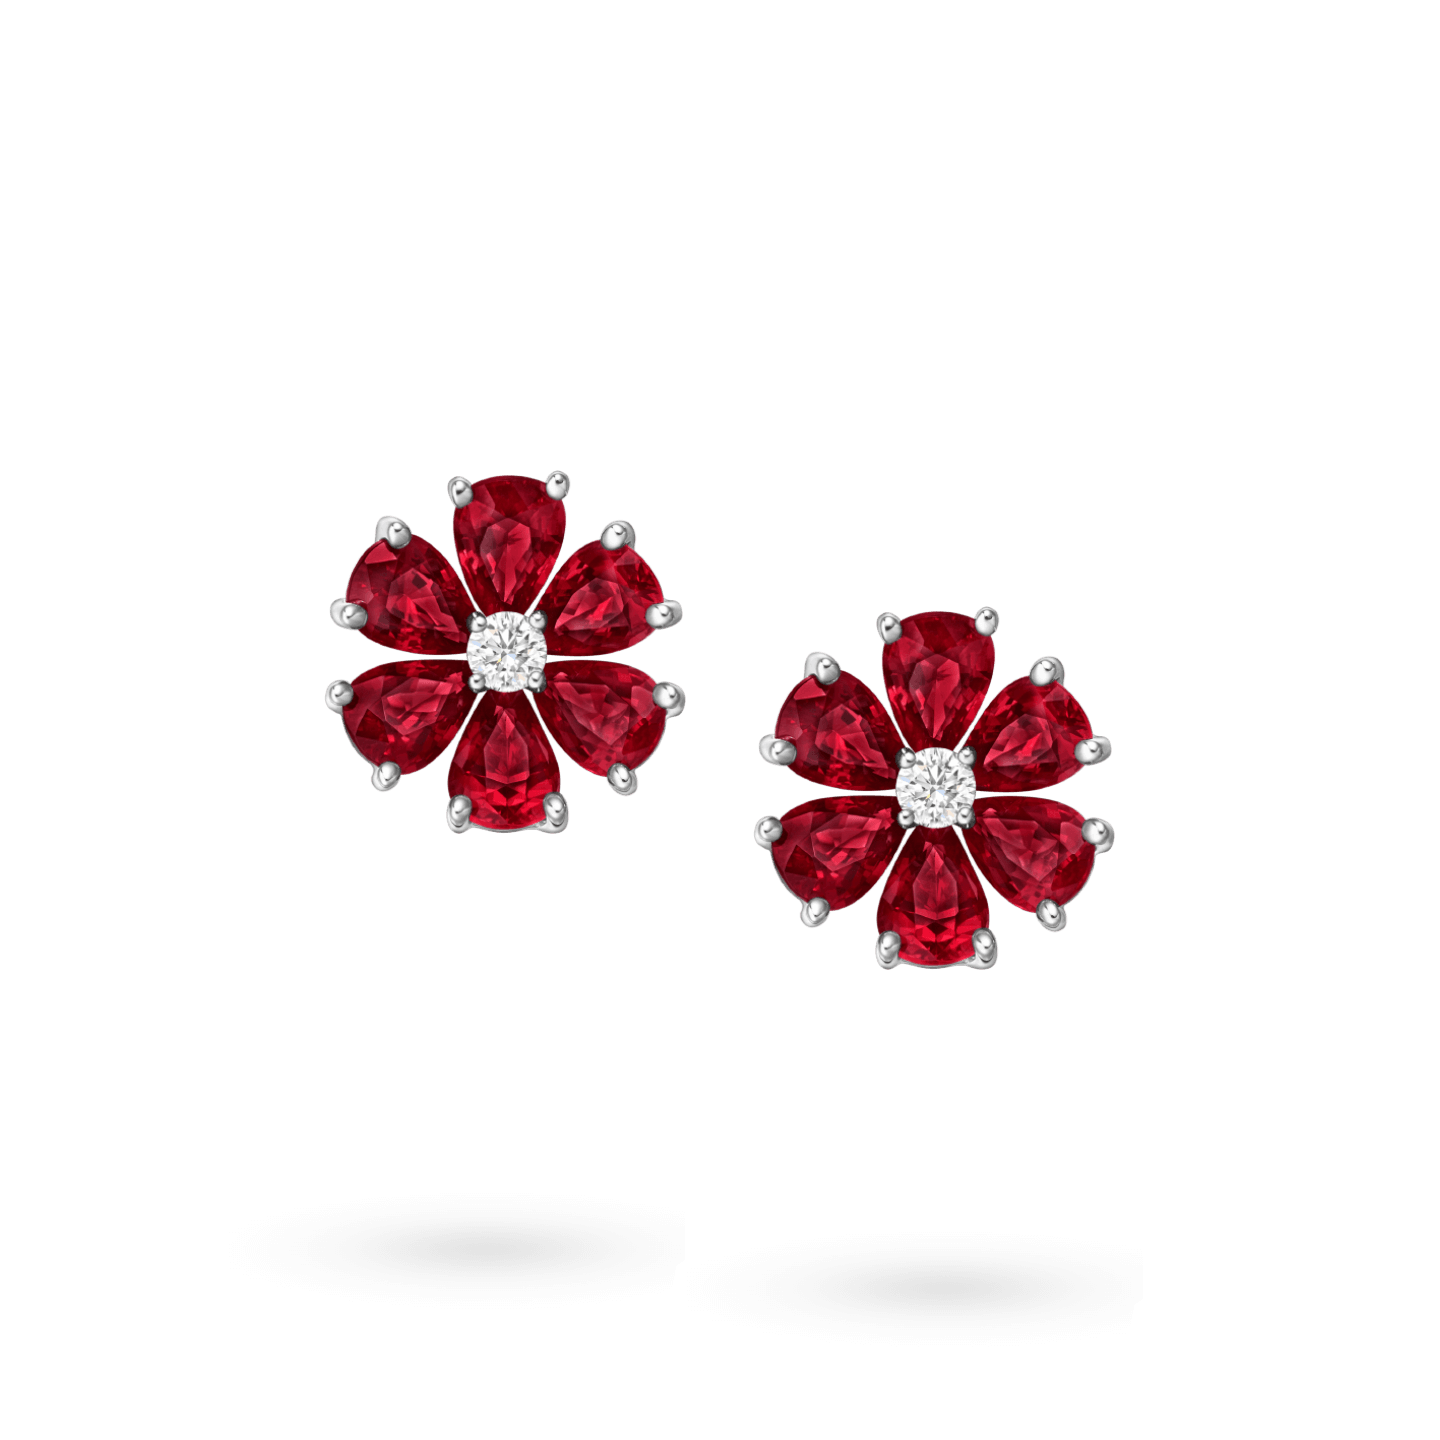 Forget-Me-Not Ruby and Diamond Earrings, Product Image 1